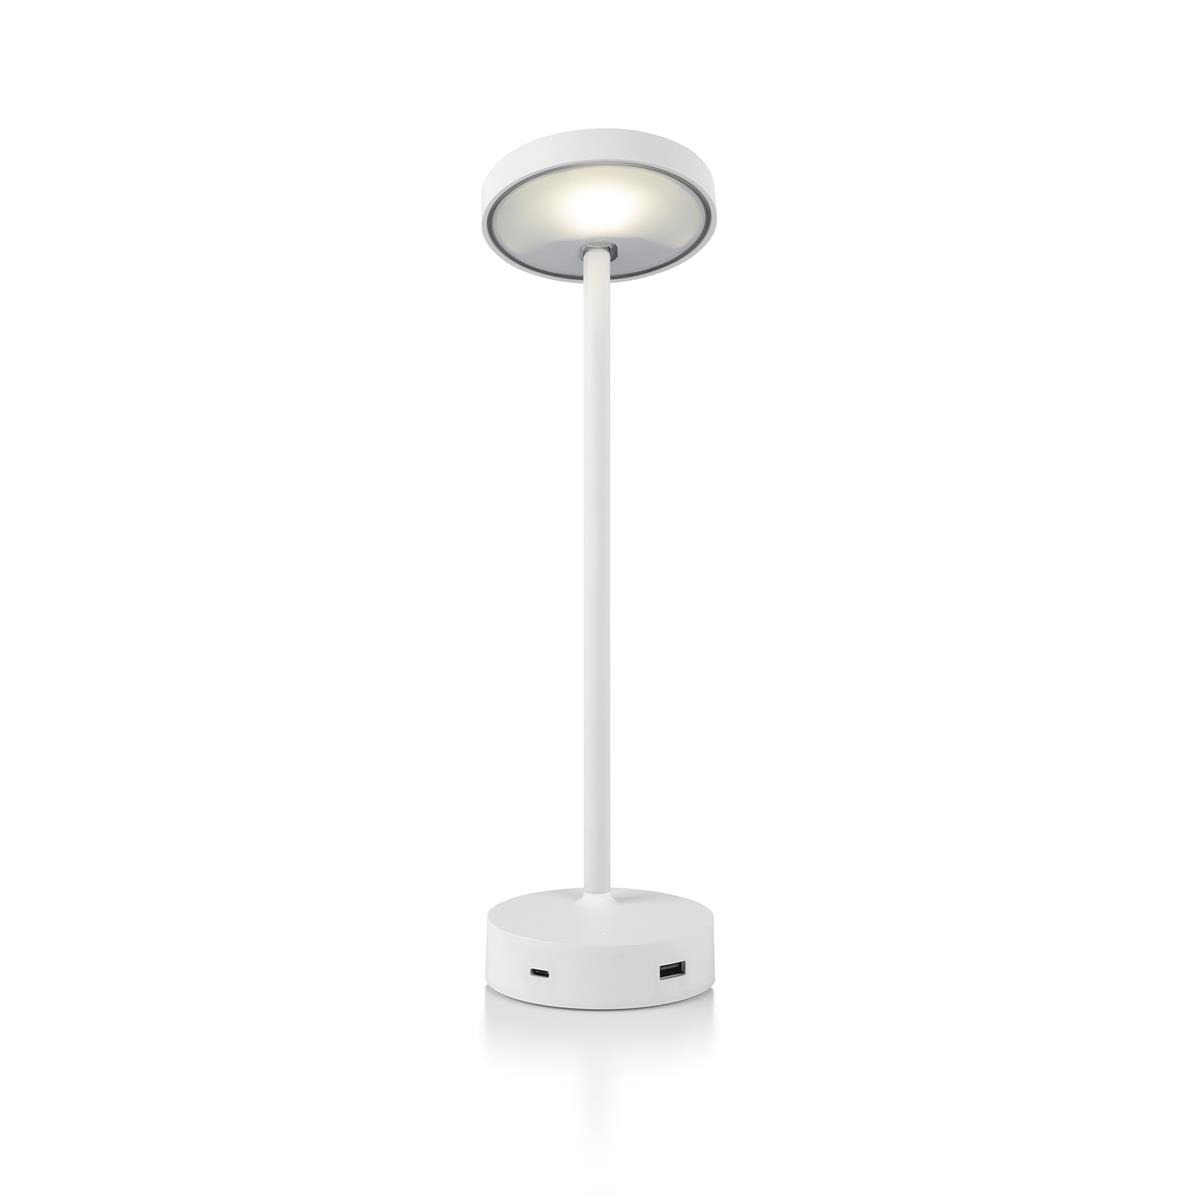 Lolly Personal Light - White